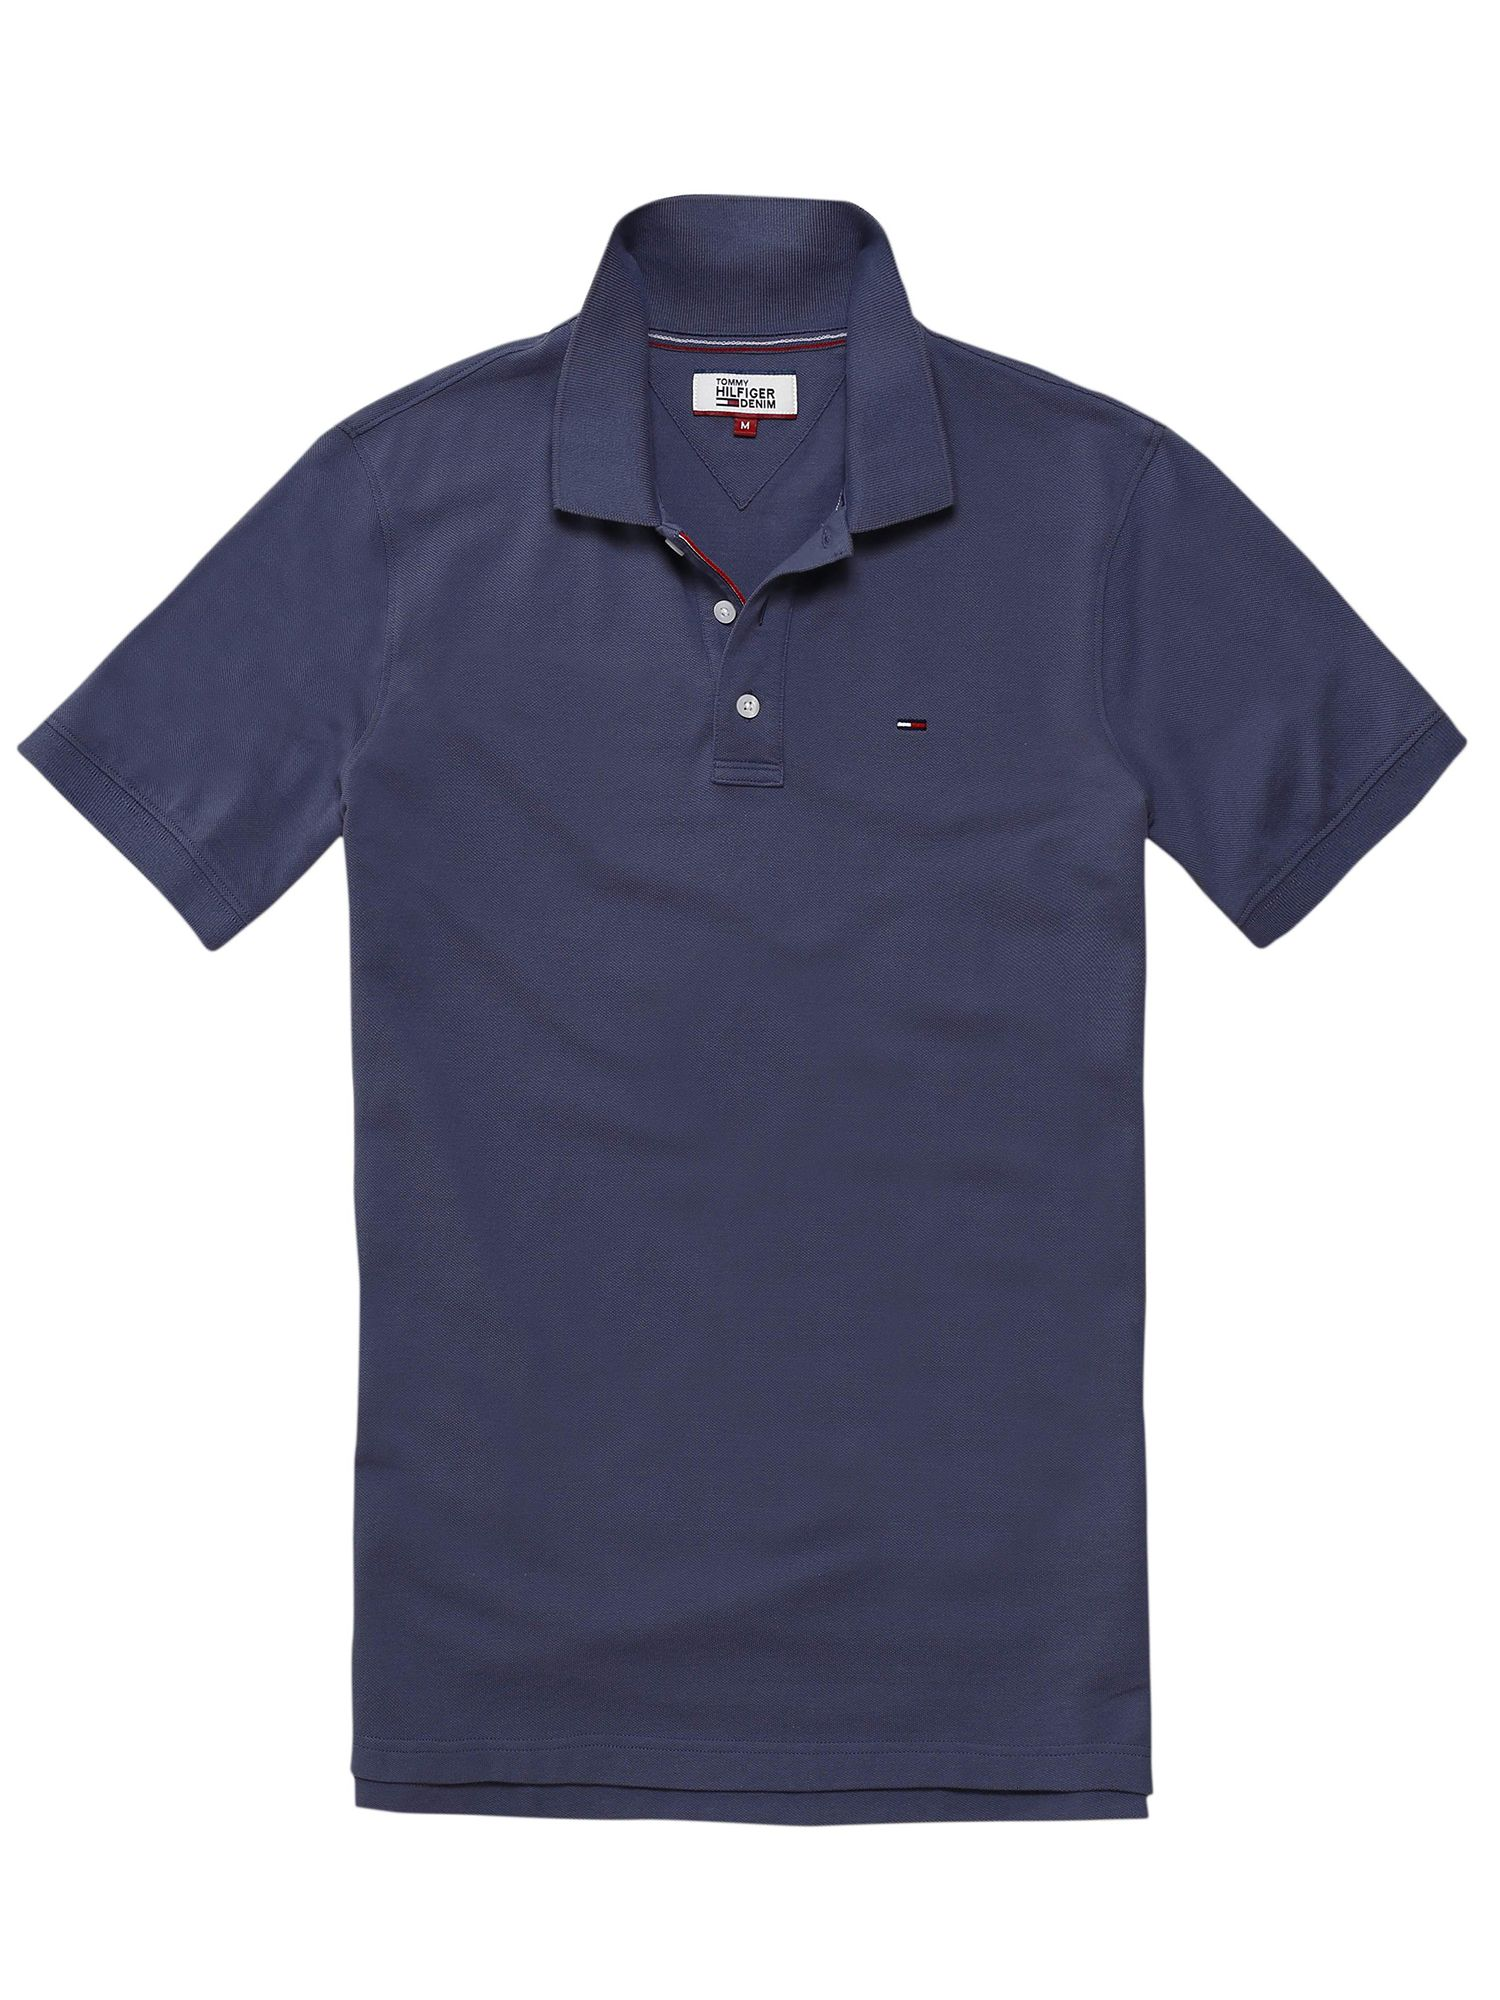 Men's Tommy Hilfiger THDM basic polo top, Stone Blue